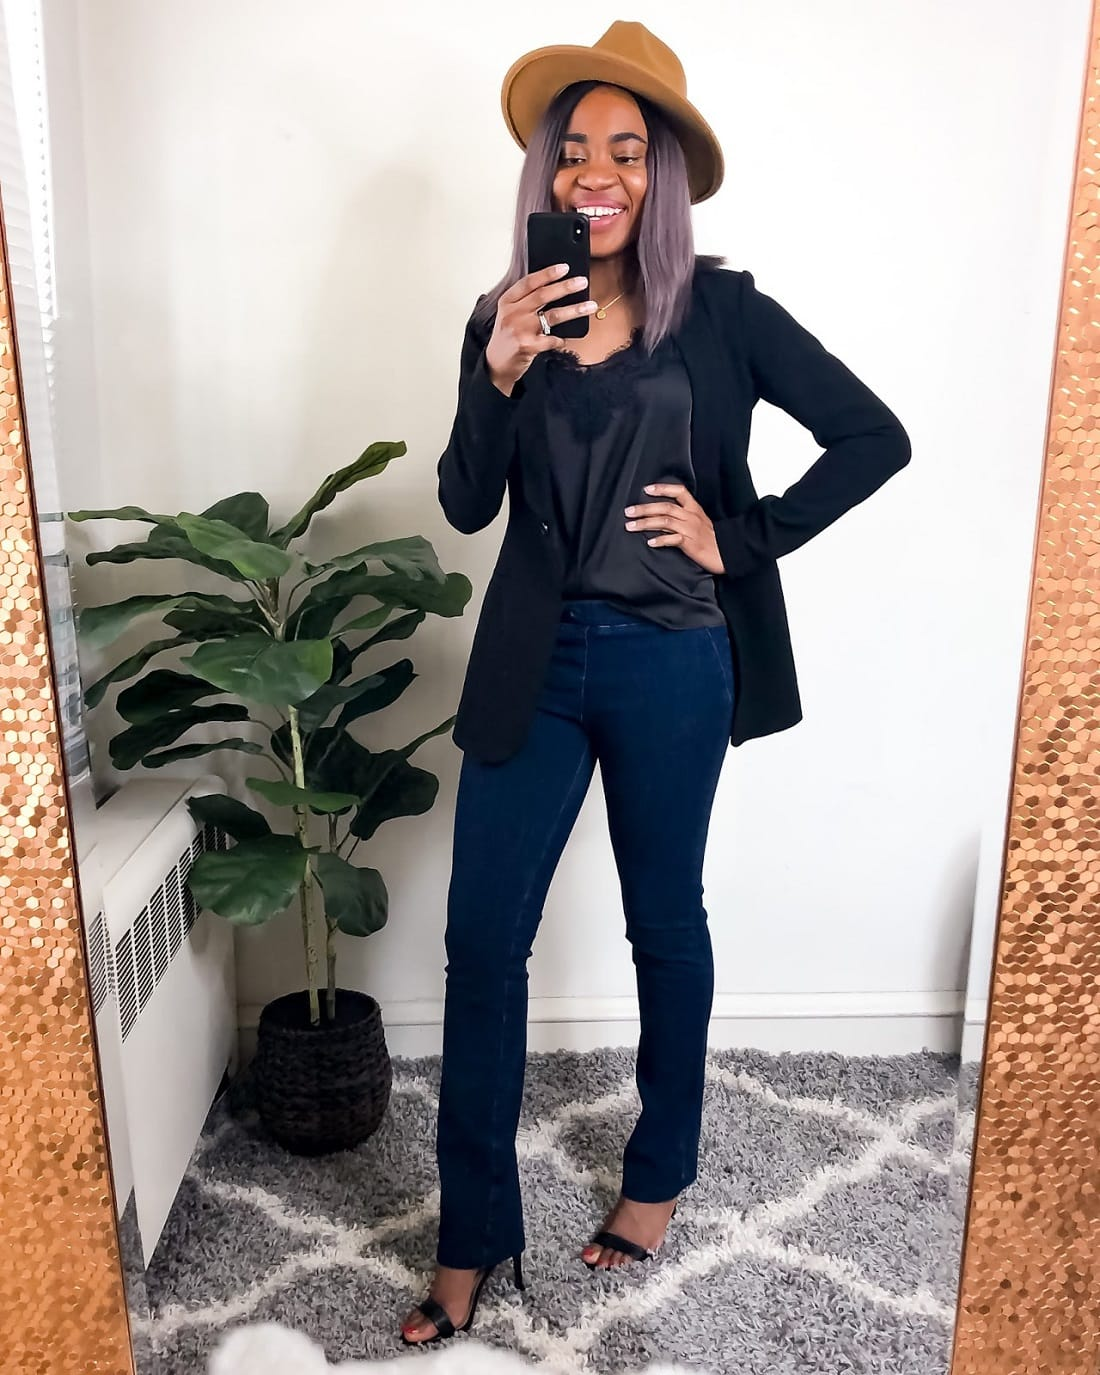 A chic camisole goes well with a Betabrand yoga jeans